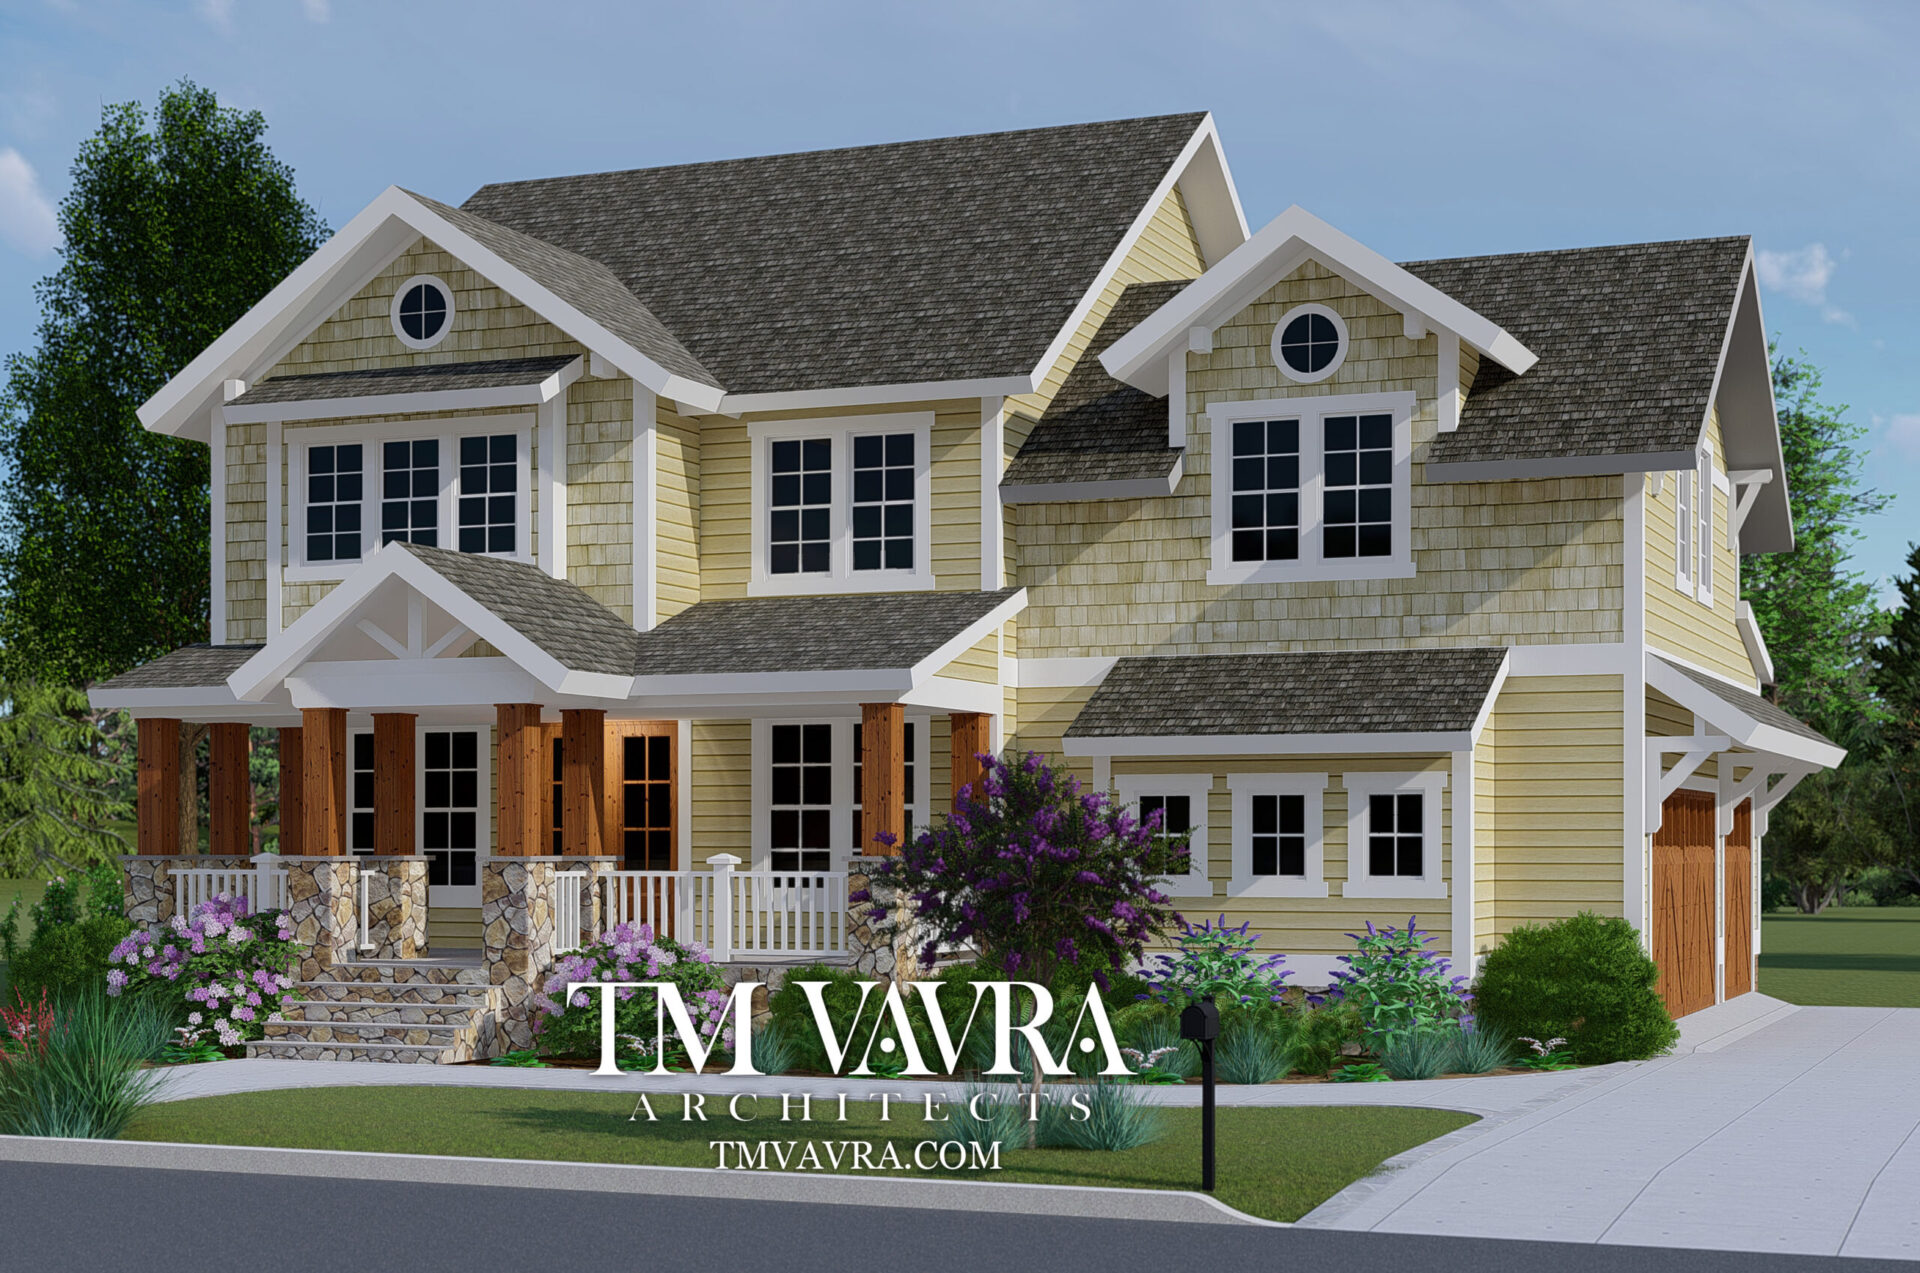 The Annandale by TM Vavra